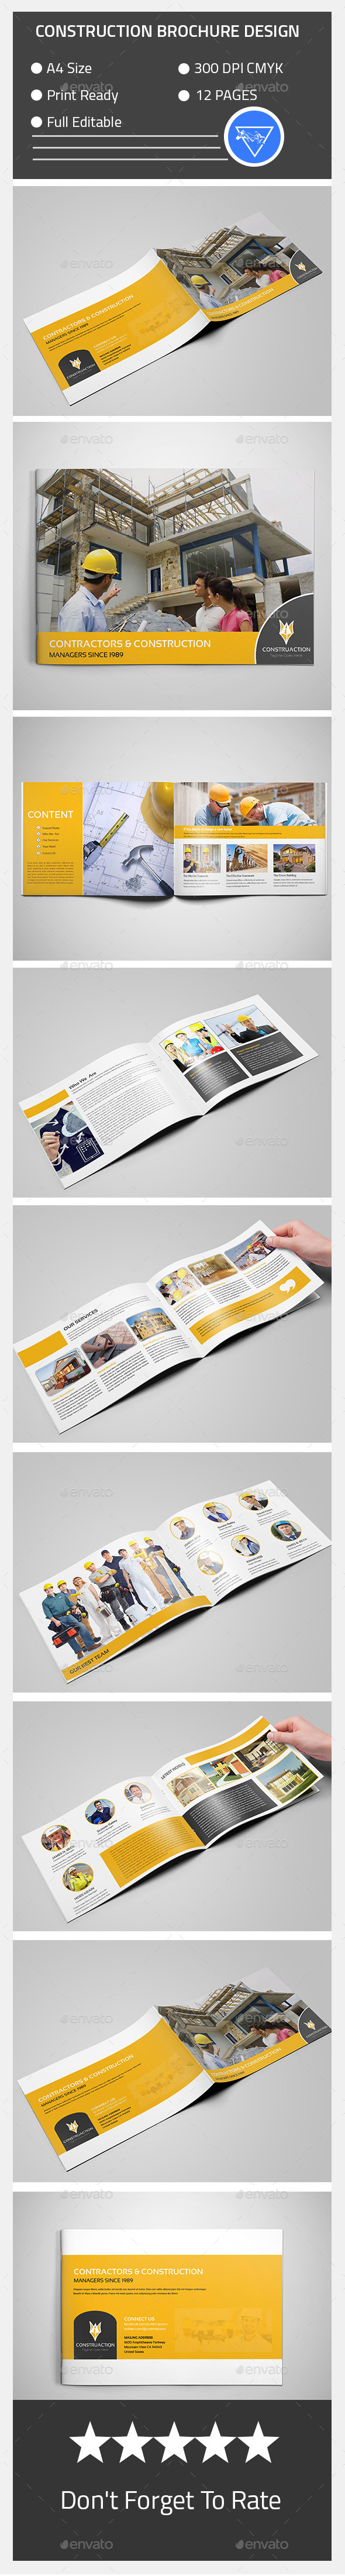 Get Your Attractive And Professional Realestate Brochure Design - Construction brochure templates